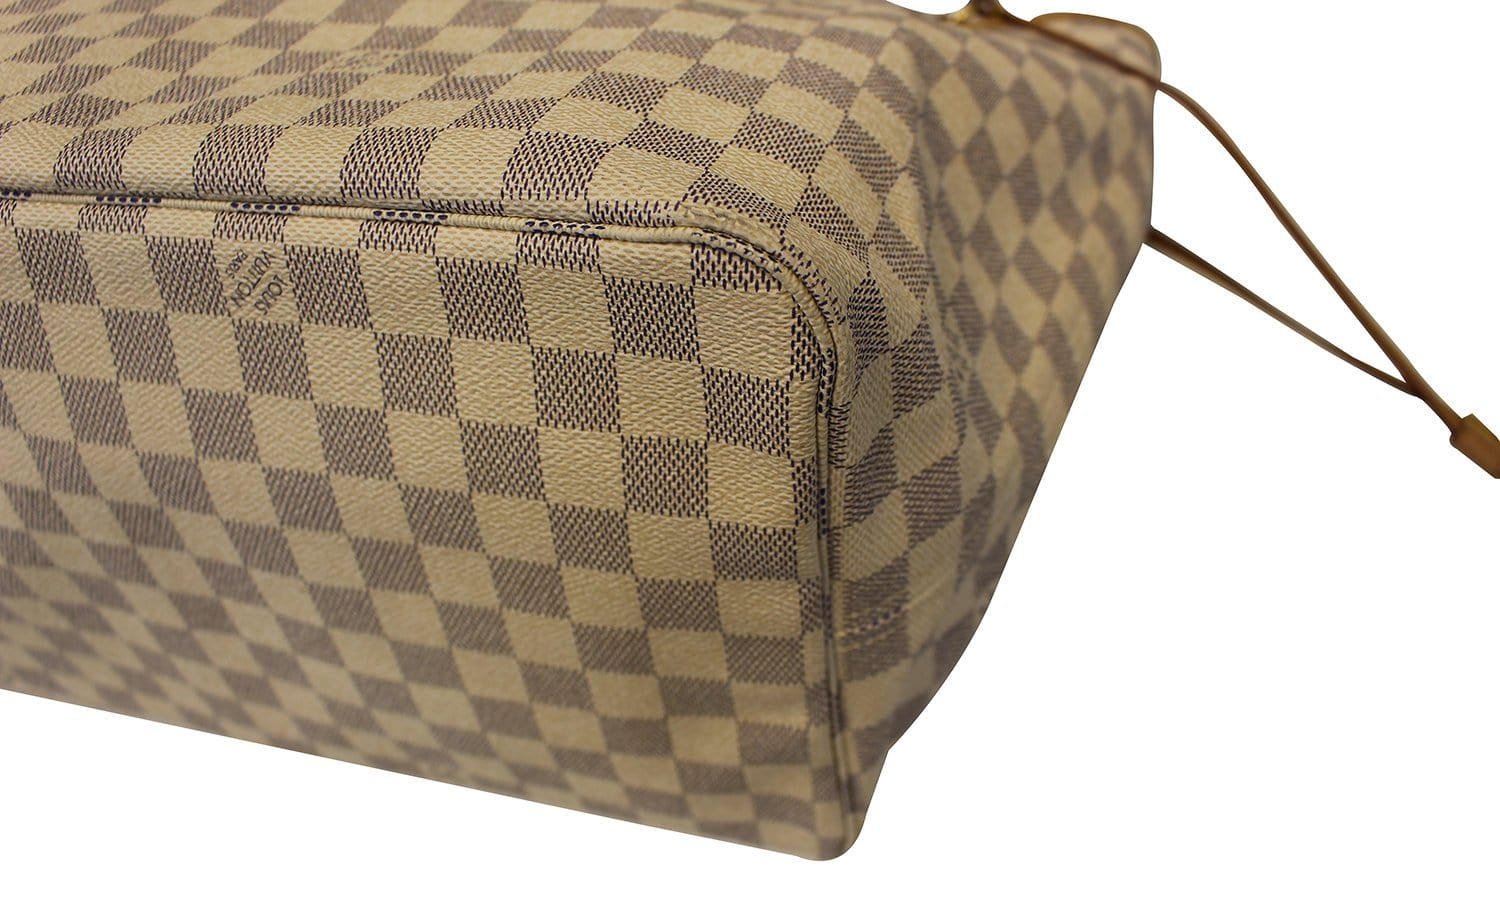 c7572d65cc79 LOUIS VUITTON Damier Azur Neverfull GM White Tote Bag